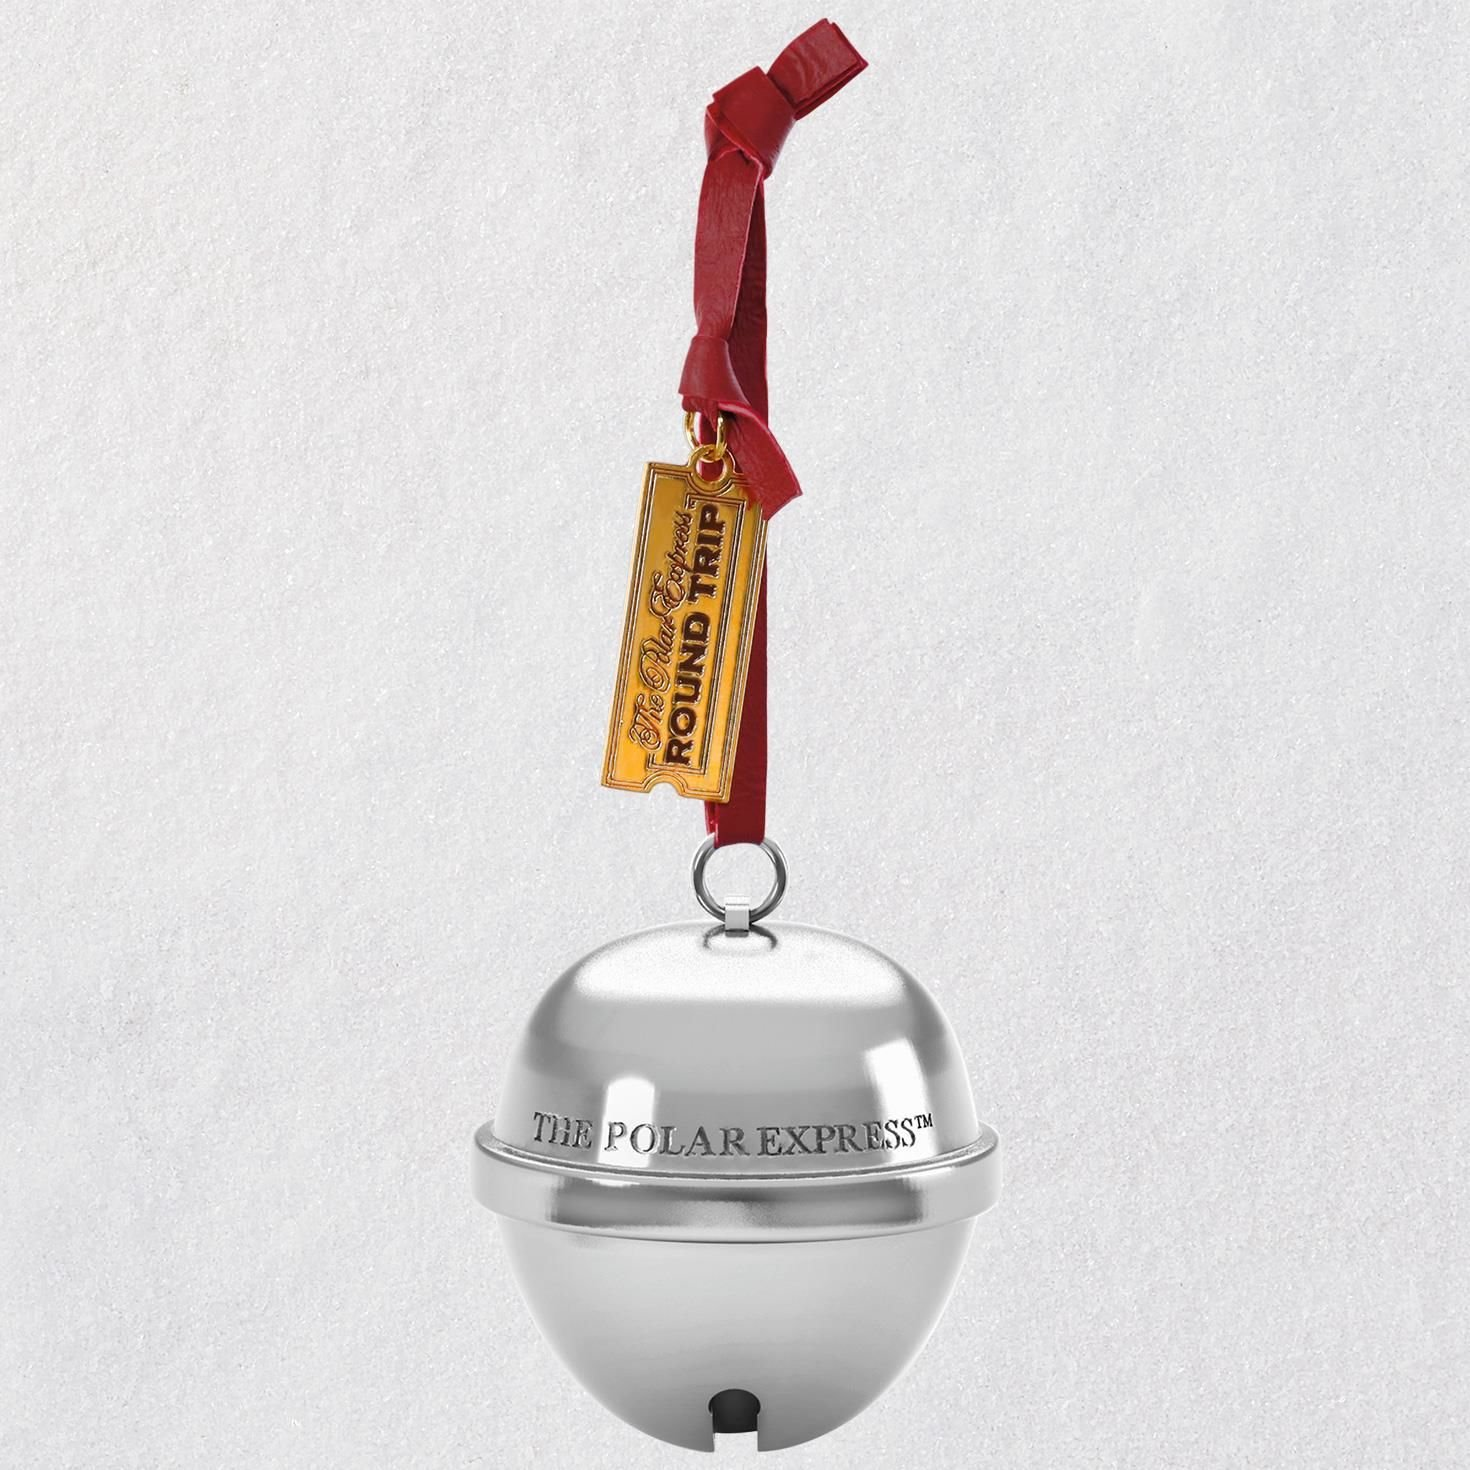 Hallmark Keepsake Christmas Ornament 2018 Year Dated, The Polar Express Bell The First Gift of Christmas With Sound